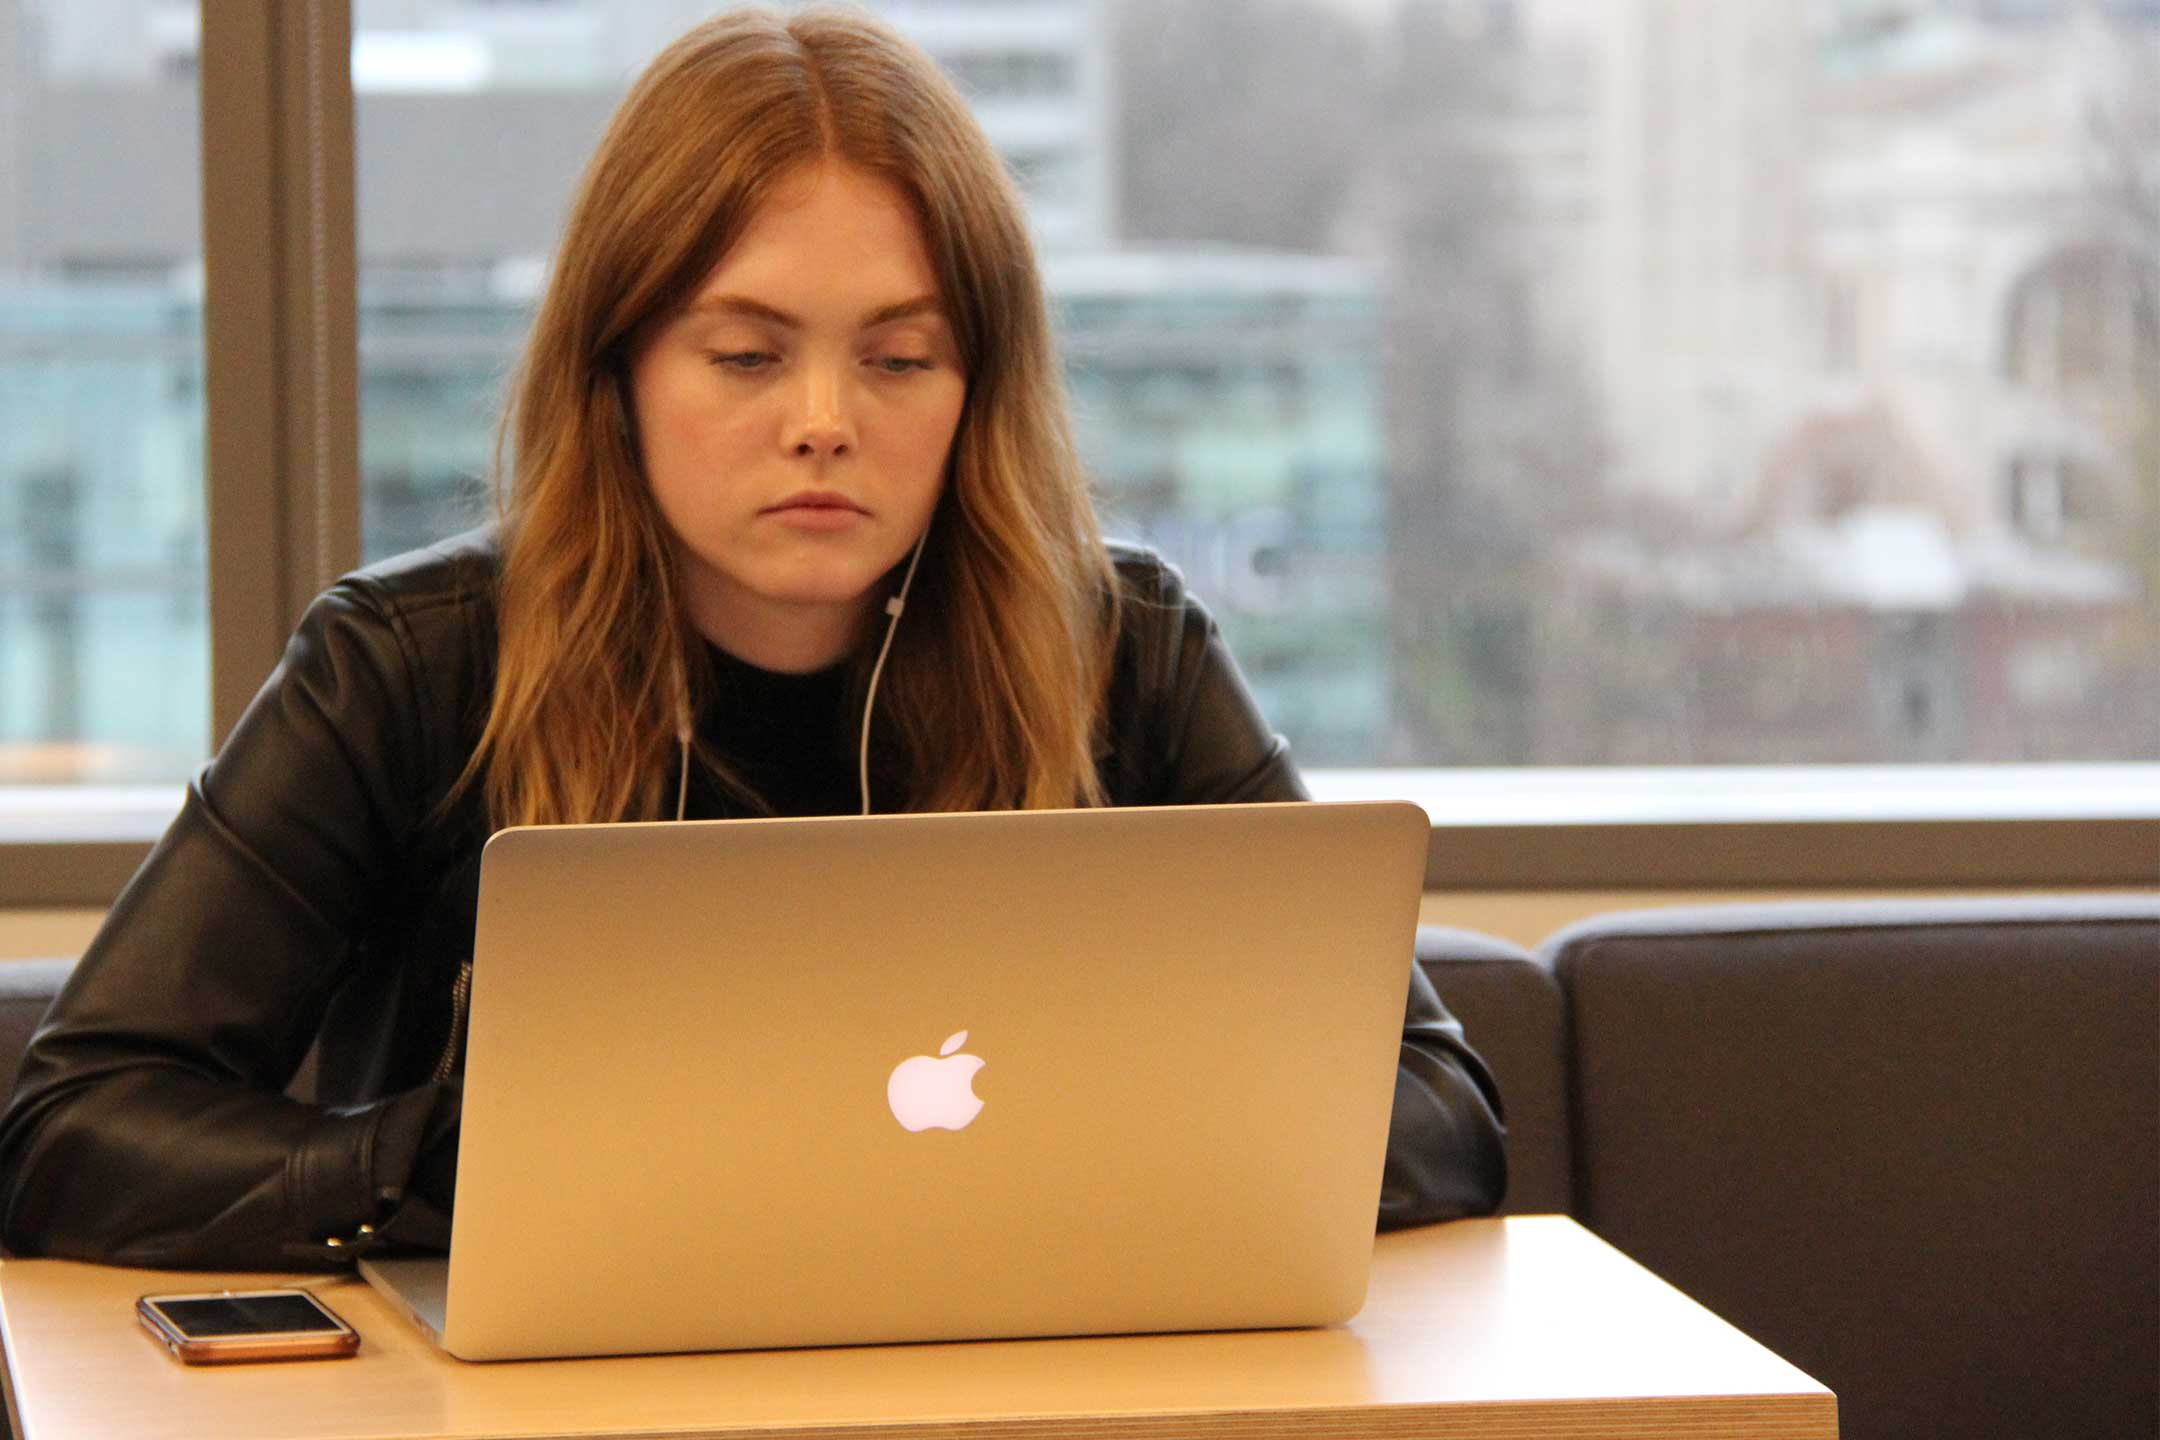 Jessica Taylor of Portent a digital marketing agency works intently on a project